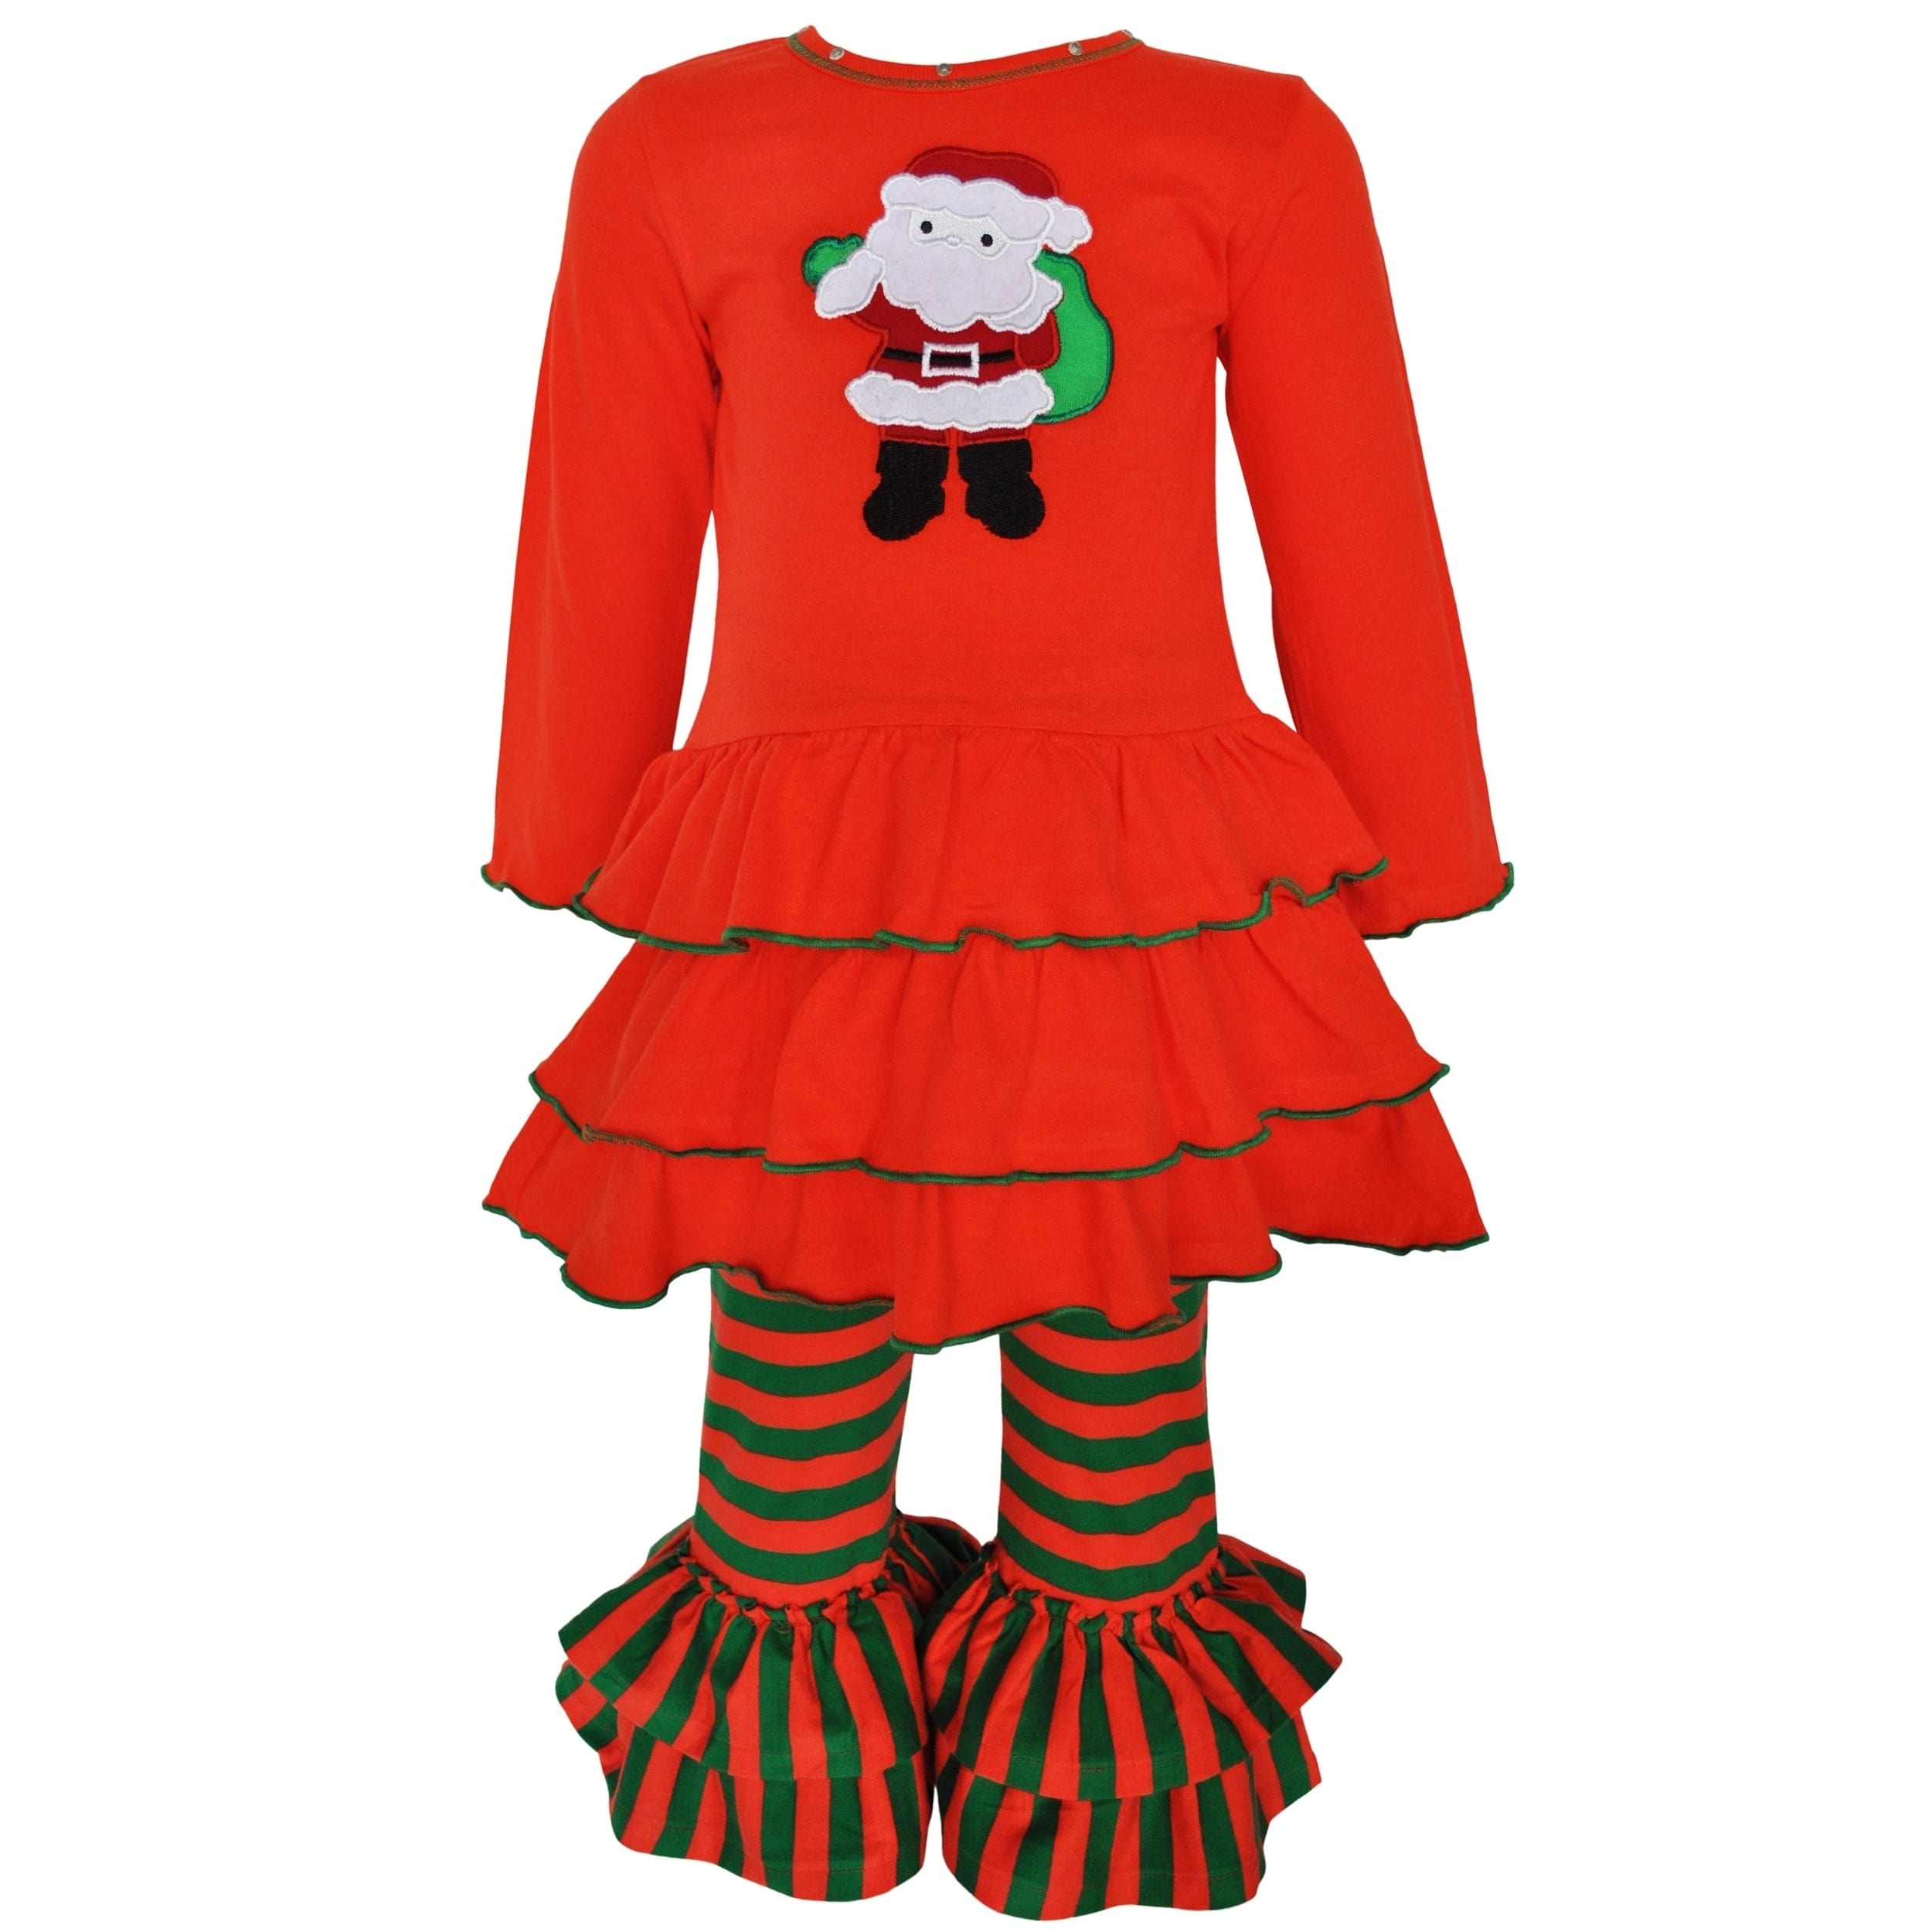 AnnLoren AnnLoren Girls' Boutique Red and Green Cotton Sa...